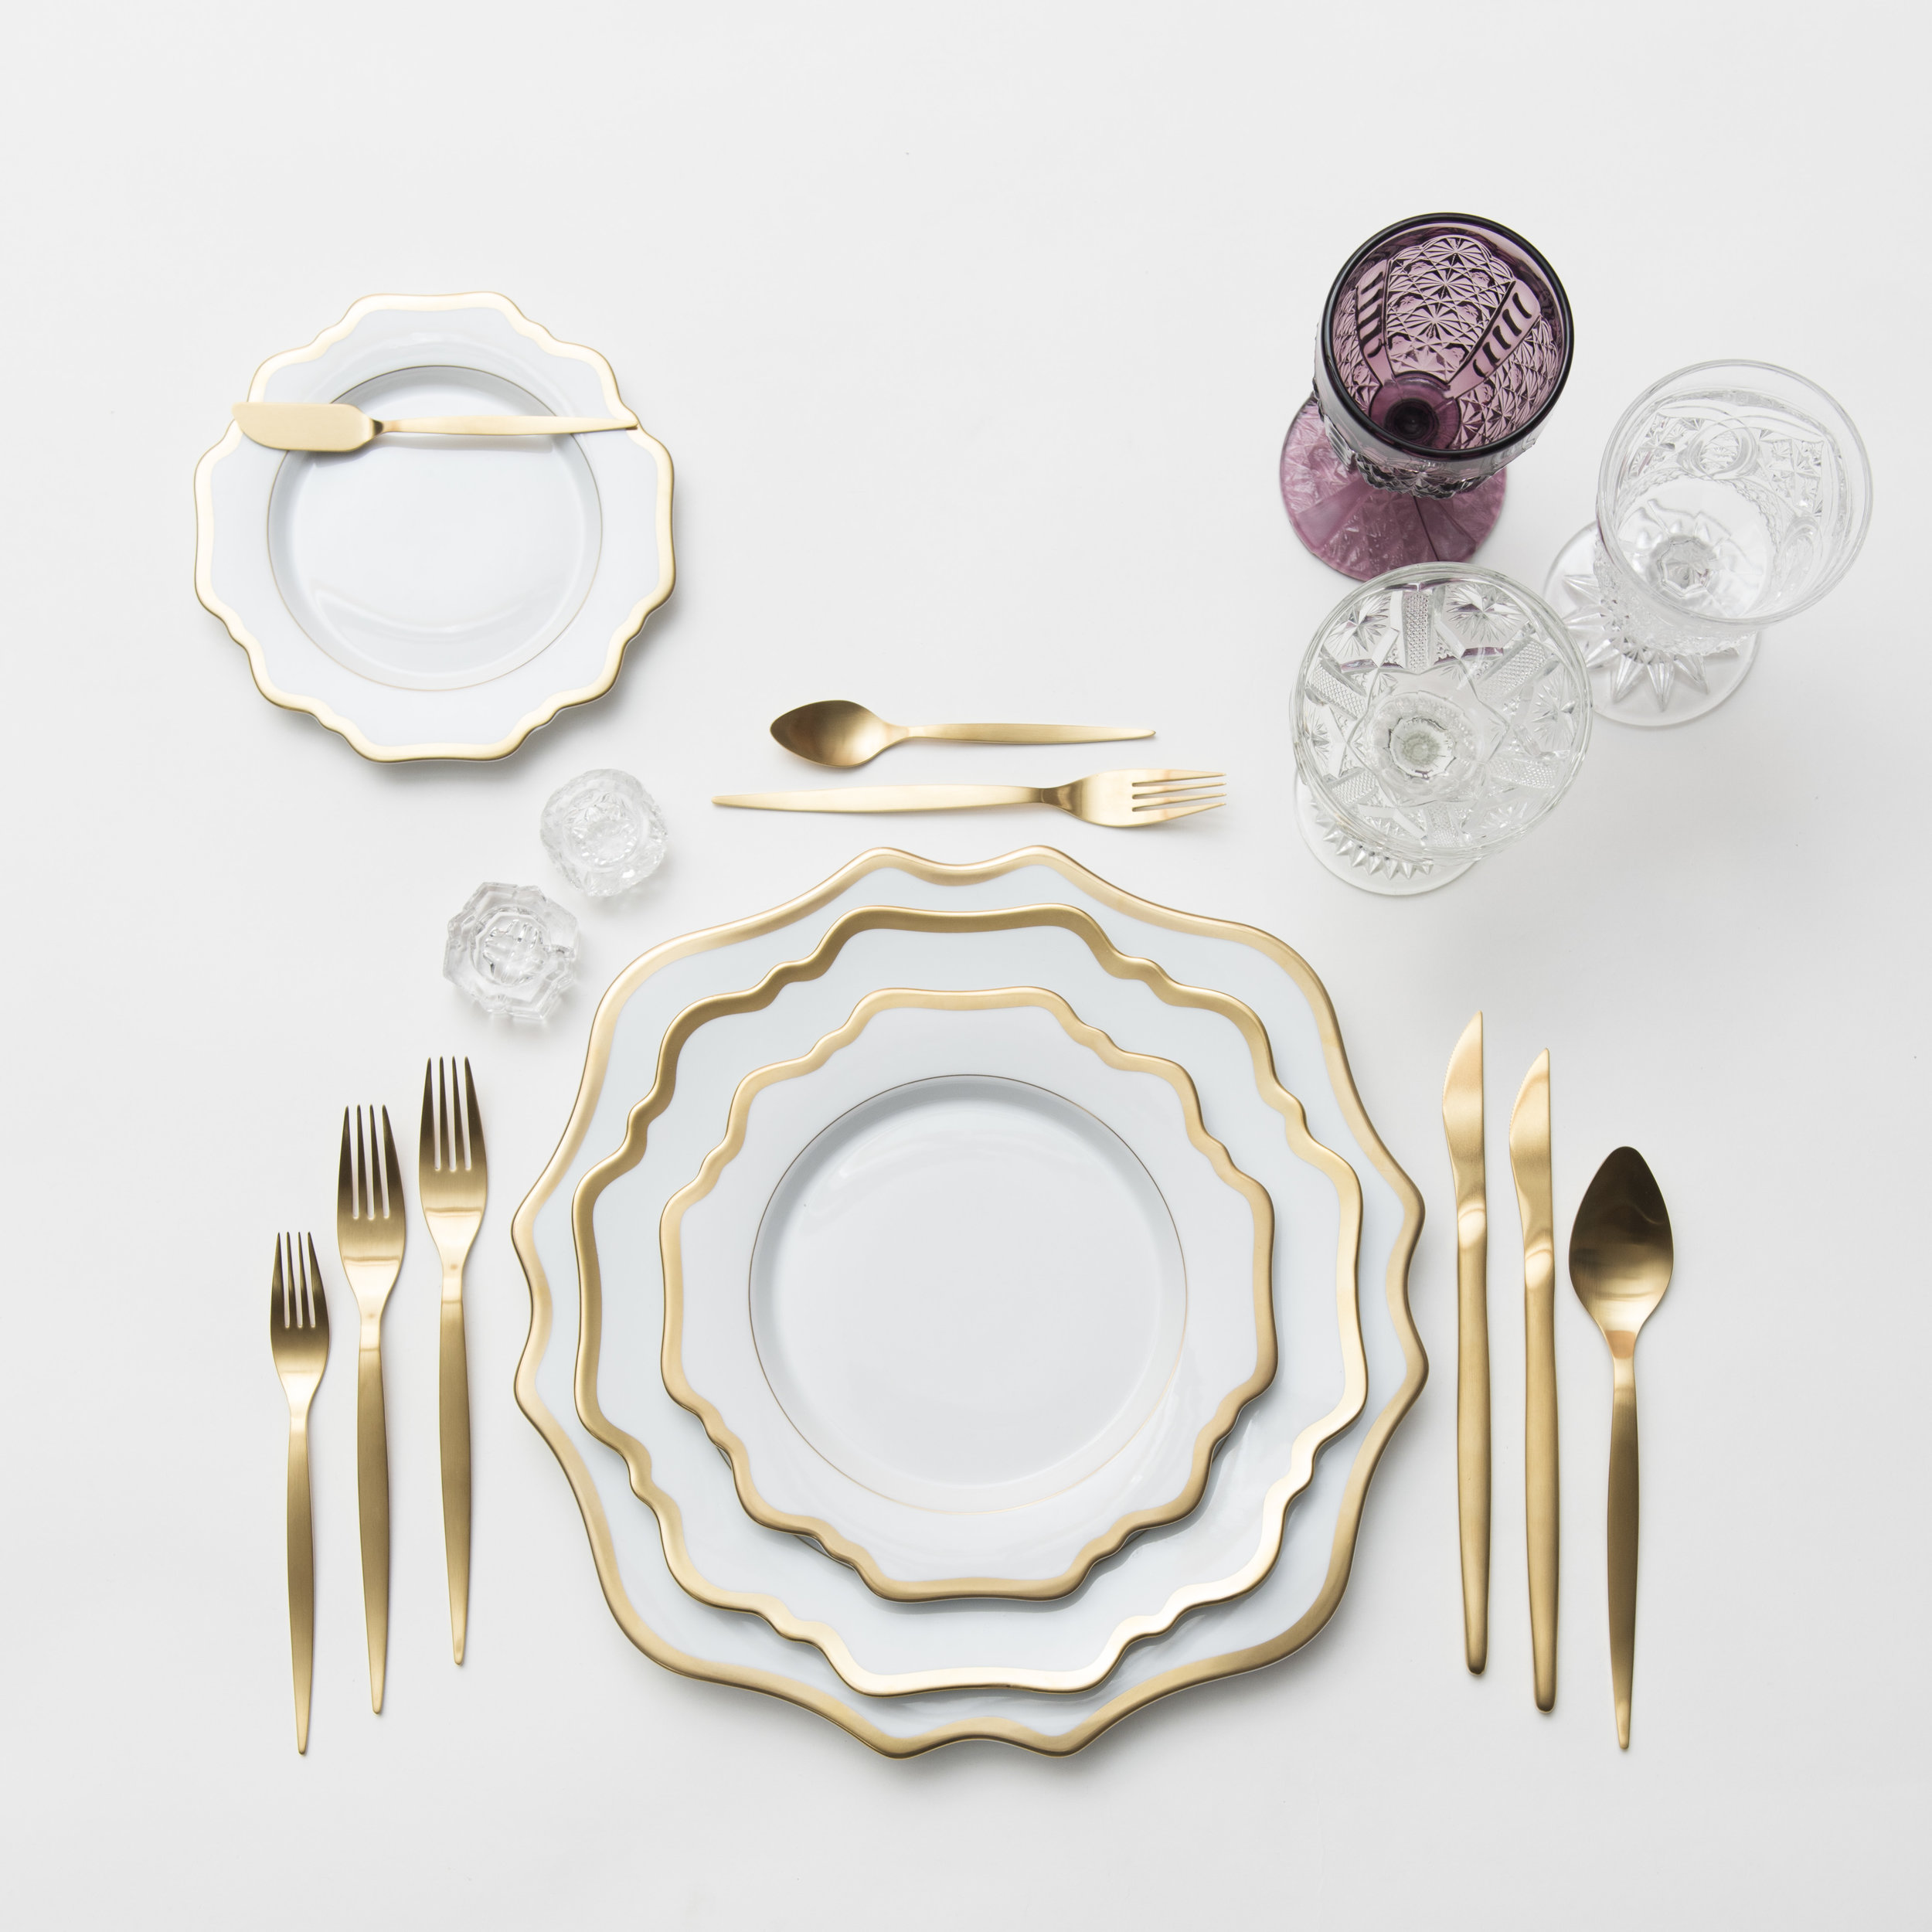 RENT: Anna Weatherley Chargers/Dinnerware in White/Gold + Celeste Flatware in Matte Gold + Purple Vintage Goblets + Early American Pressed Glass Goblets + Vintage Champagne Coupes + Antique Crystal Salt Cellars  SHOP:Anna Weatherley Chargers/Dinnerware in White/Gold